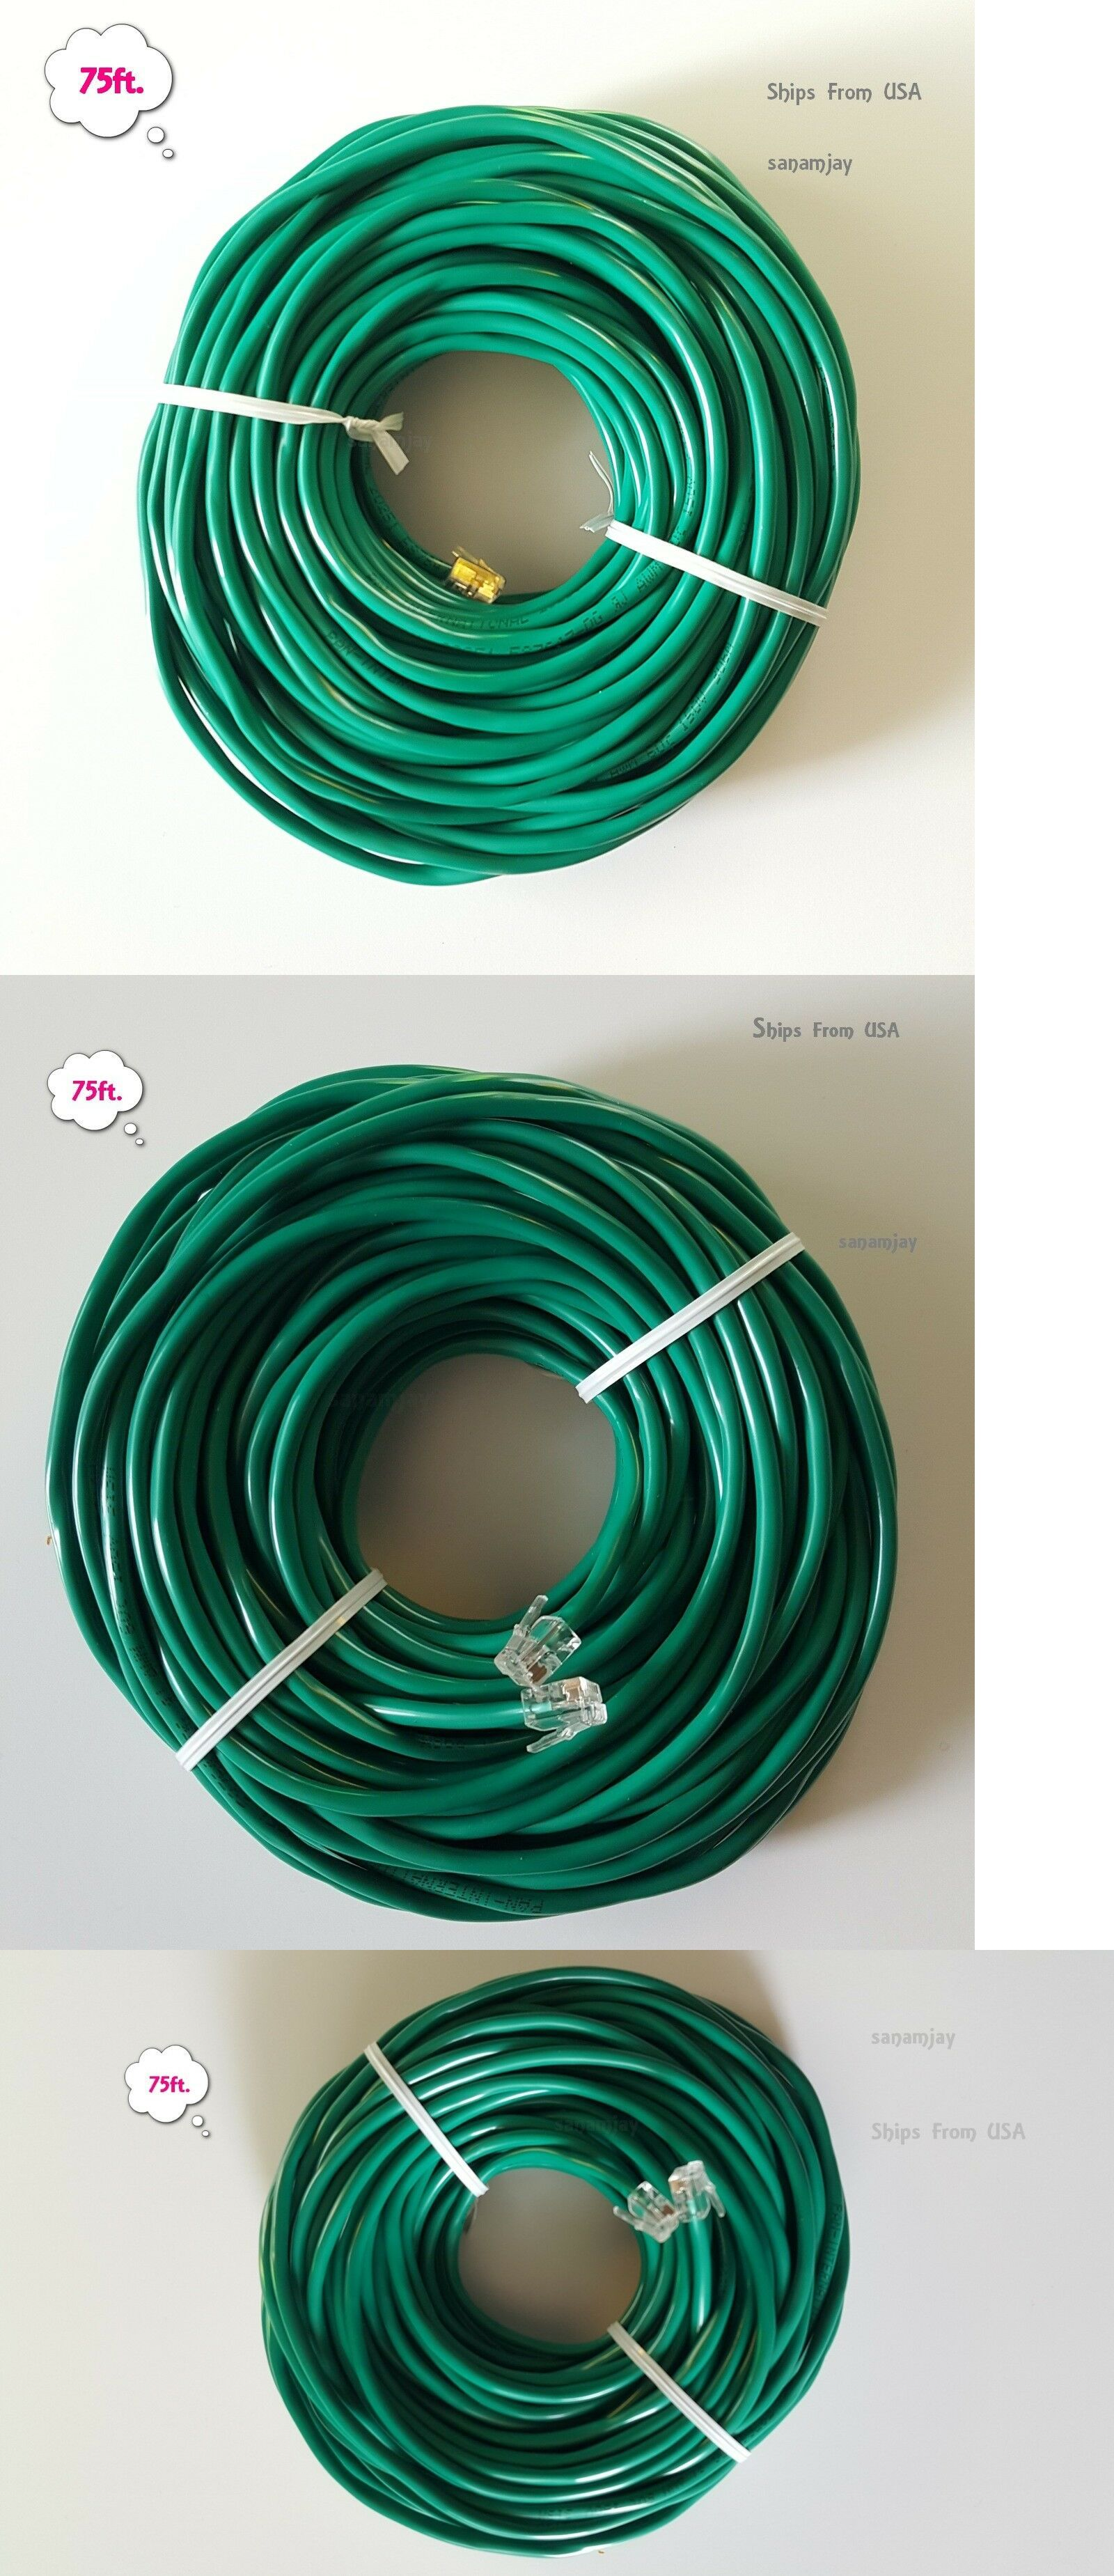 75ft. RJ11 RJ12 Green DSL Telephone Data Cable for